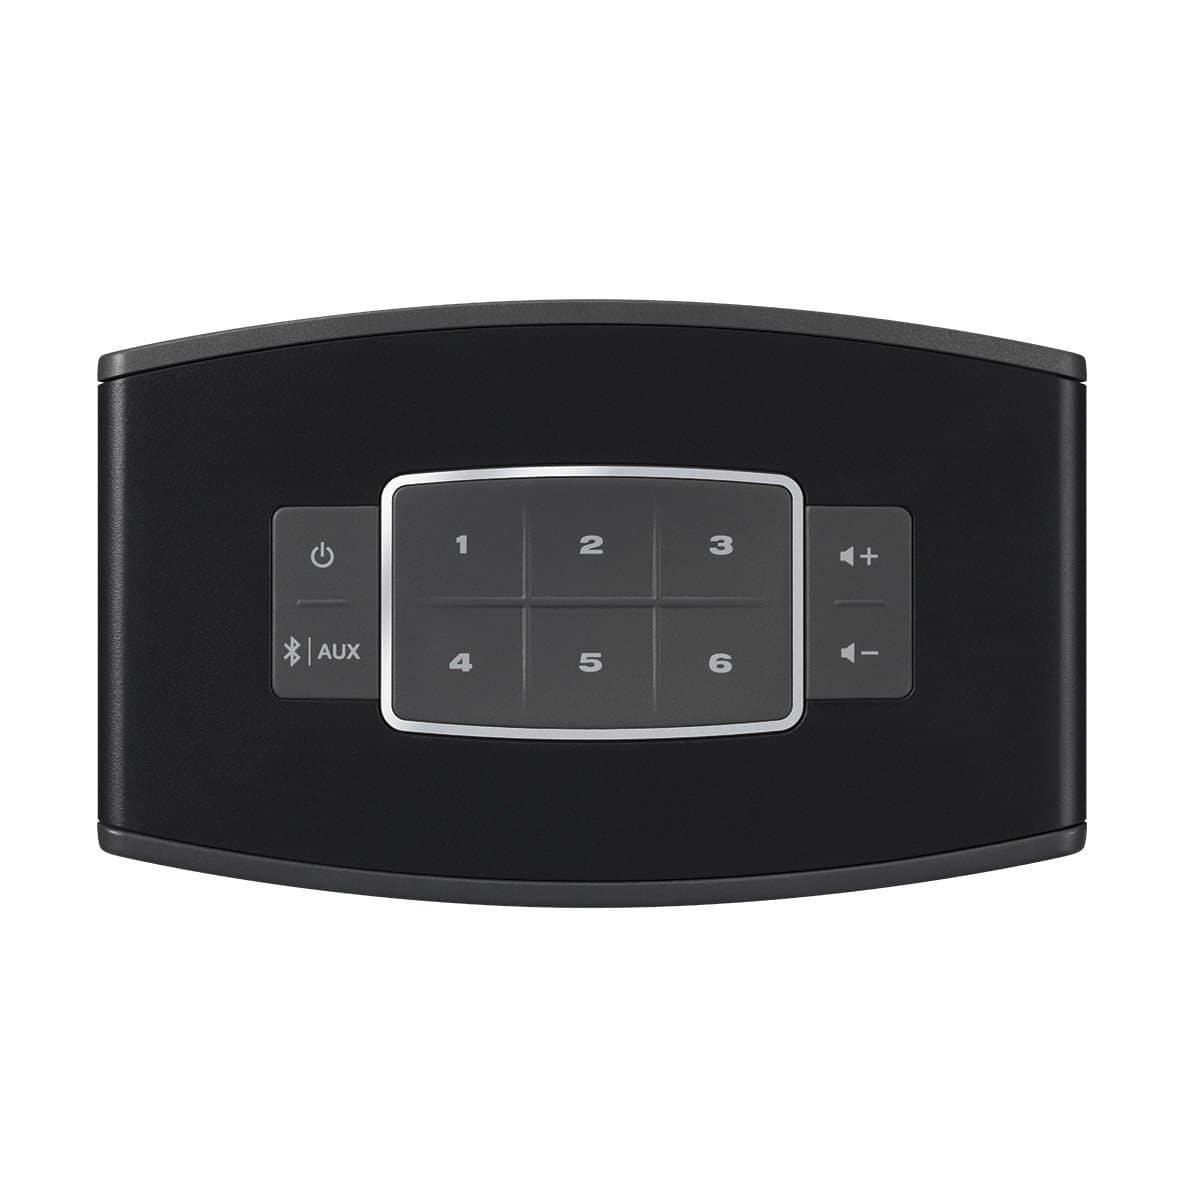 Bose SoundTouch 10 fonction